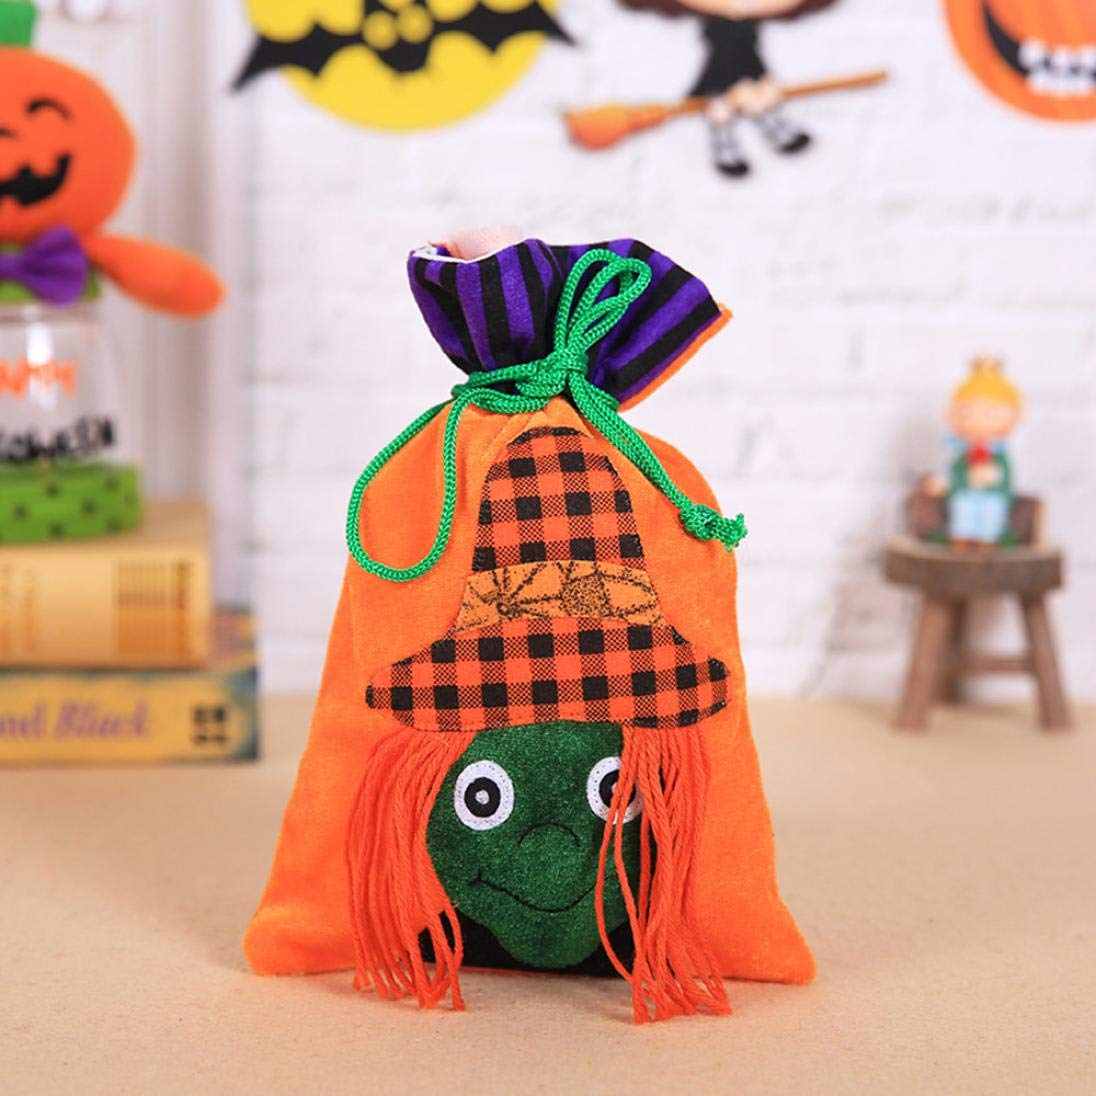 Gaddrt Cute Witches Candy Bag Halloween Packaging Great for Children Party Storage Bag Gift (E)